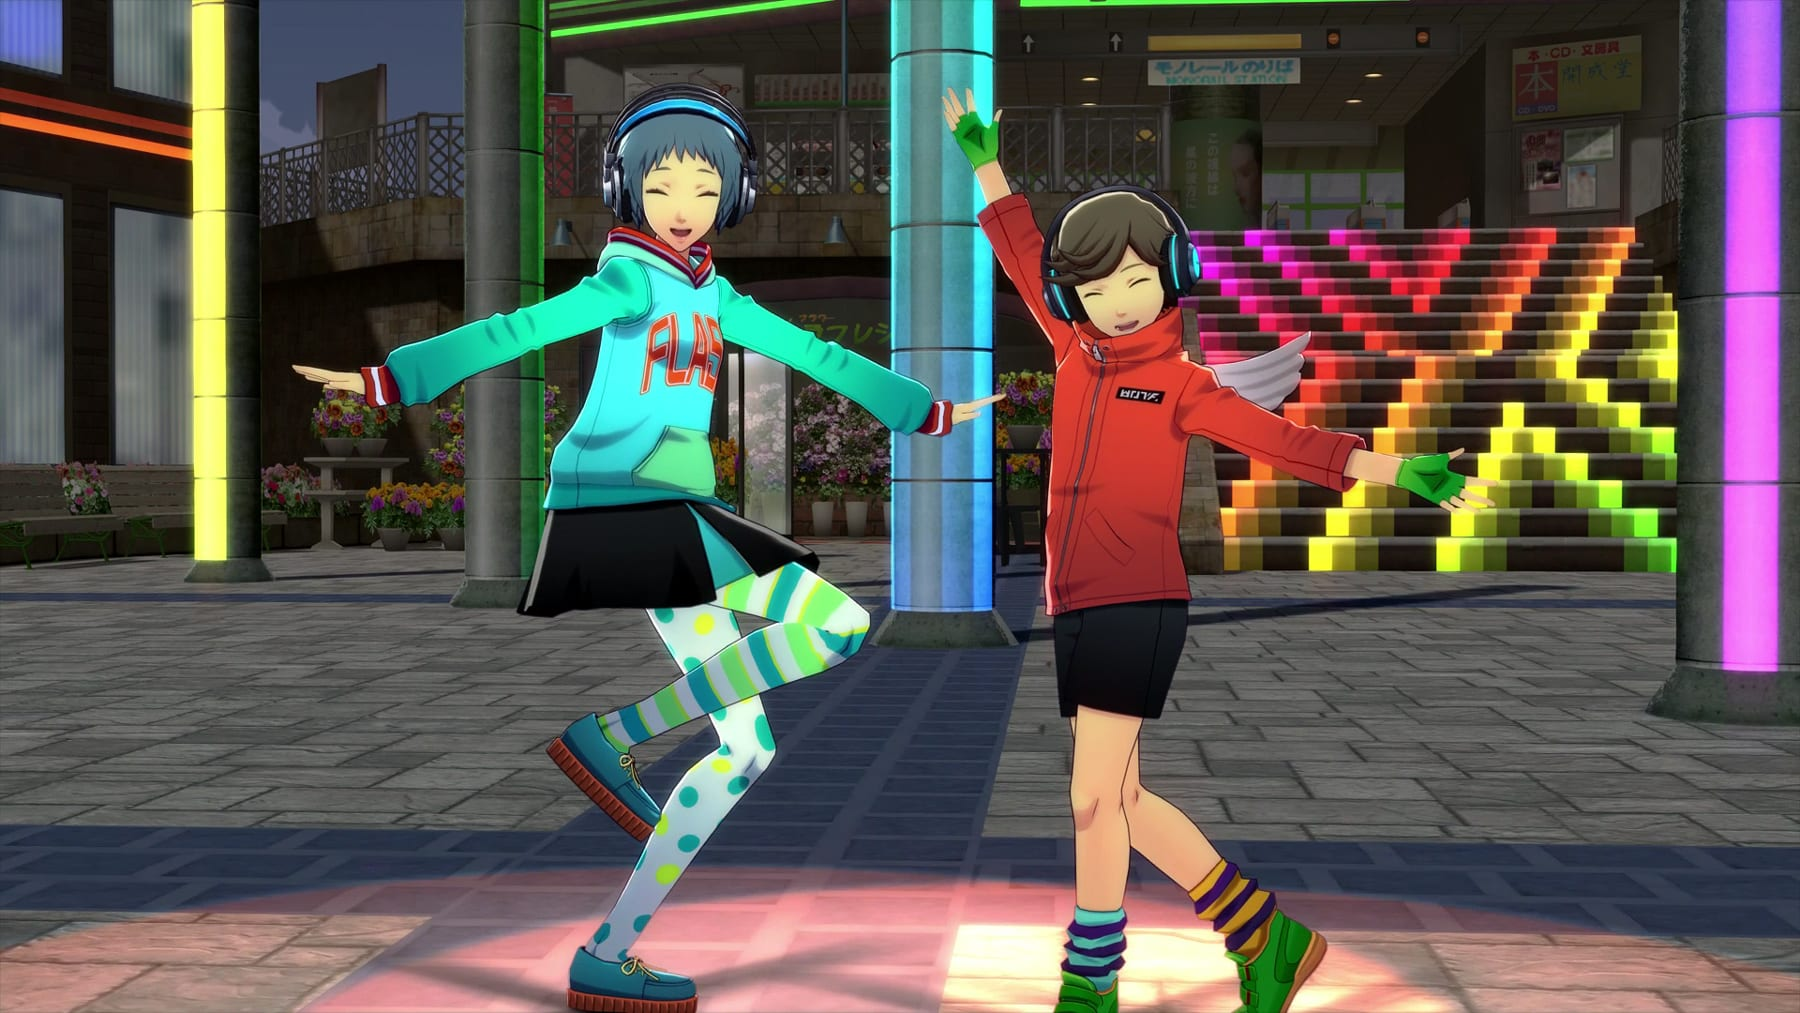 Persona 3: Dancing in Moonlight' damaged my fictional friendships